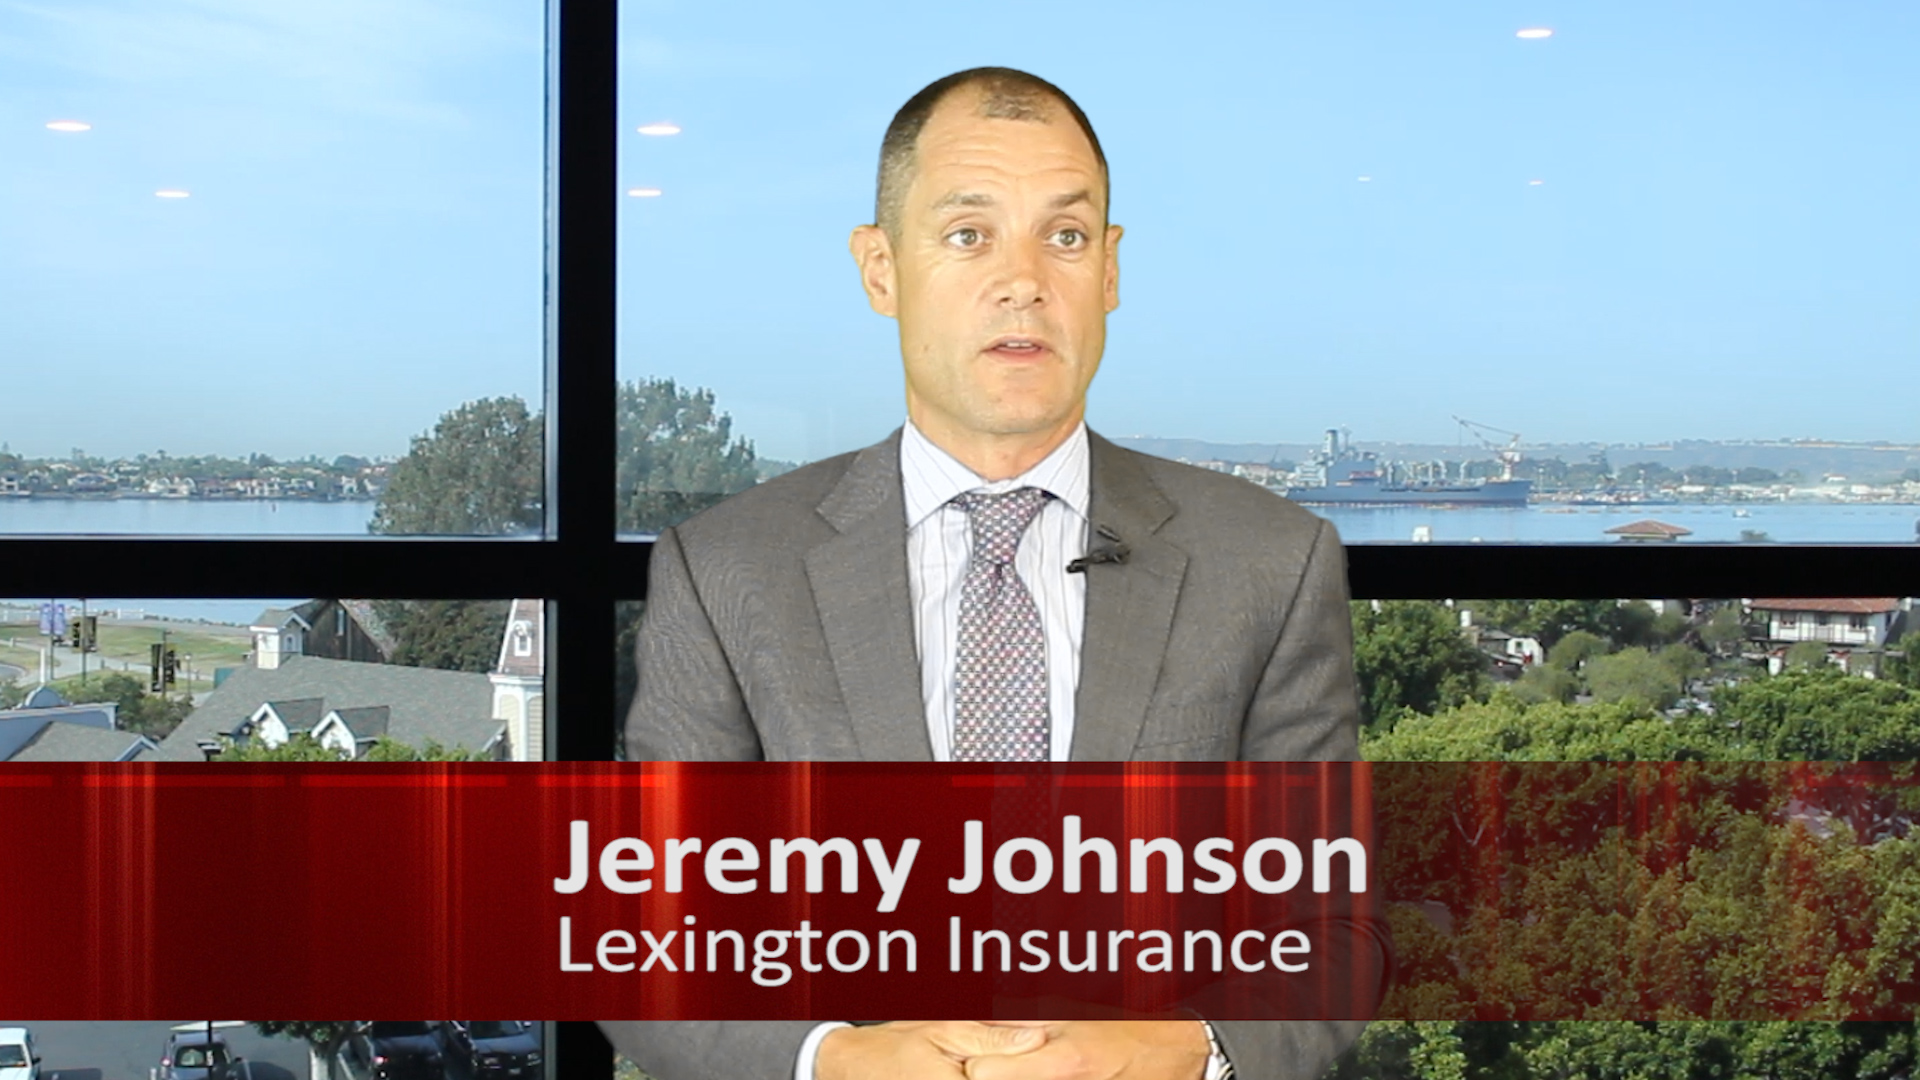 Jeremy Johnson - Lexington Insurance